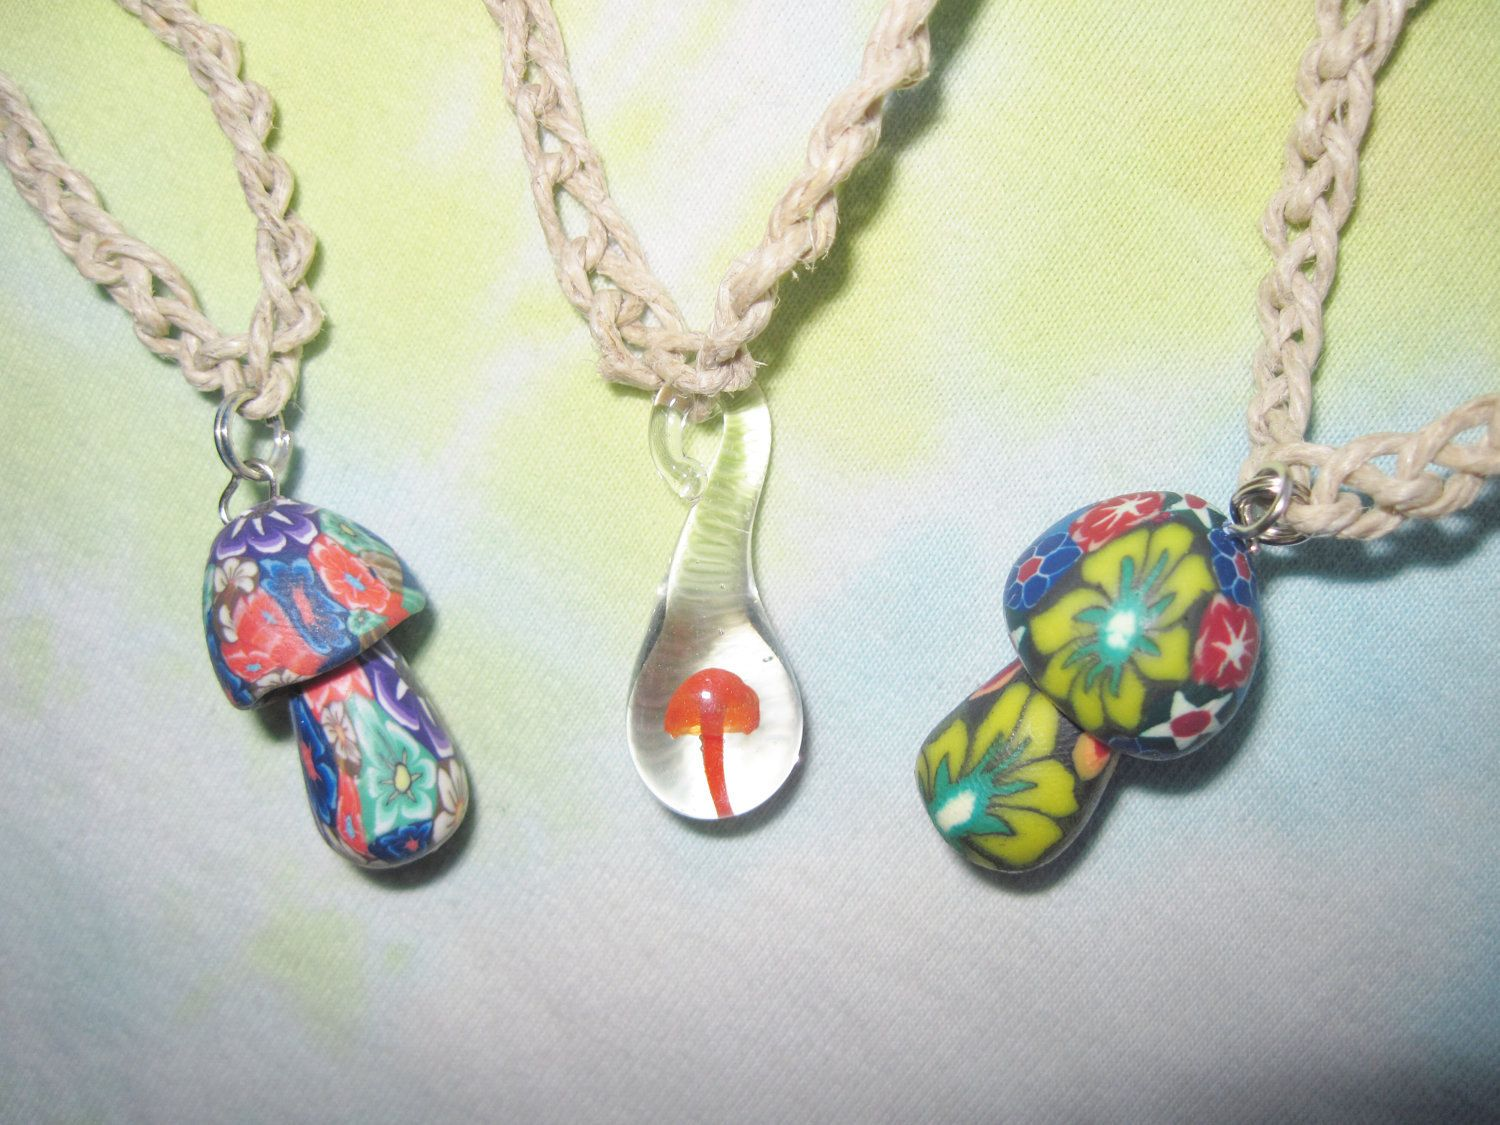 Hempnecklacesmushroomlotof3fimoglassbybeanstergoods hemp necklaces mushroom lot of 3 fimo glass pendant shrooms red psychedelic by beanstergoods on etsy mozeypictures